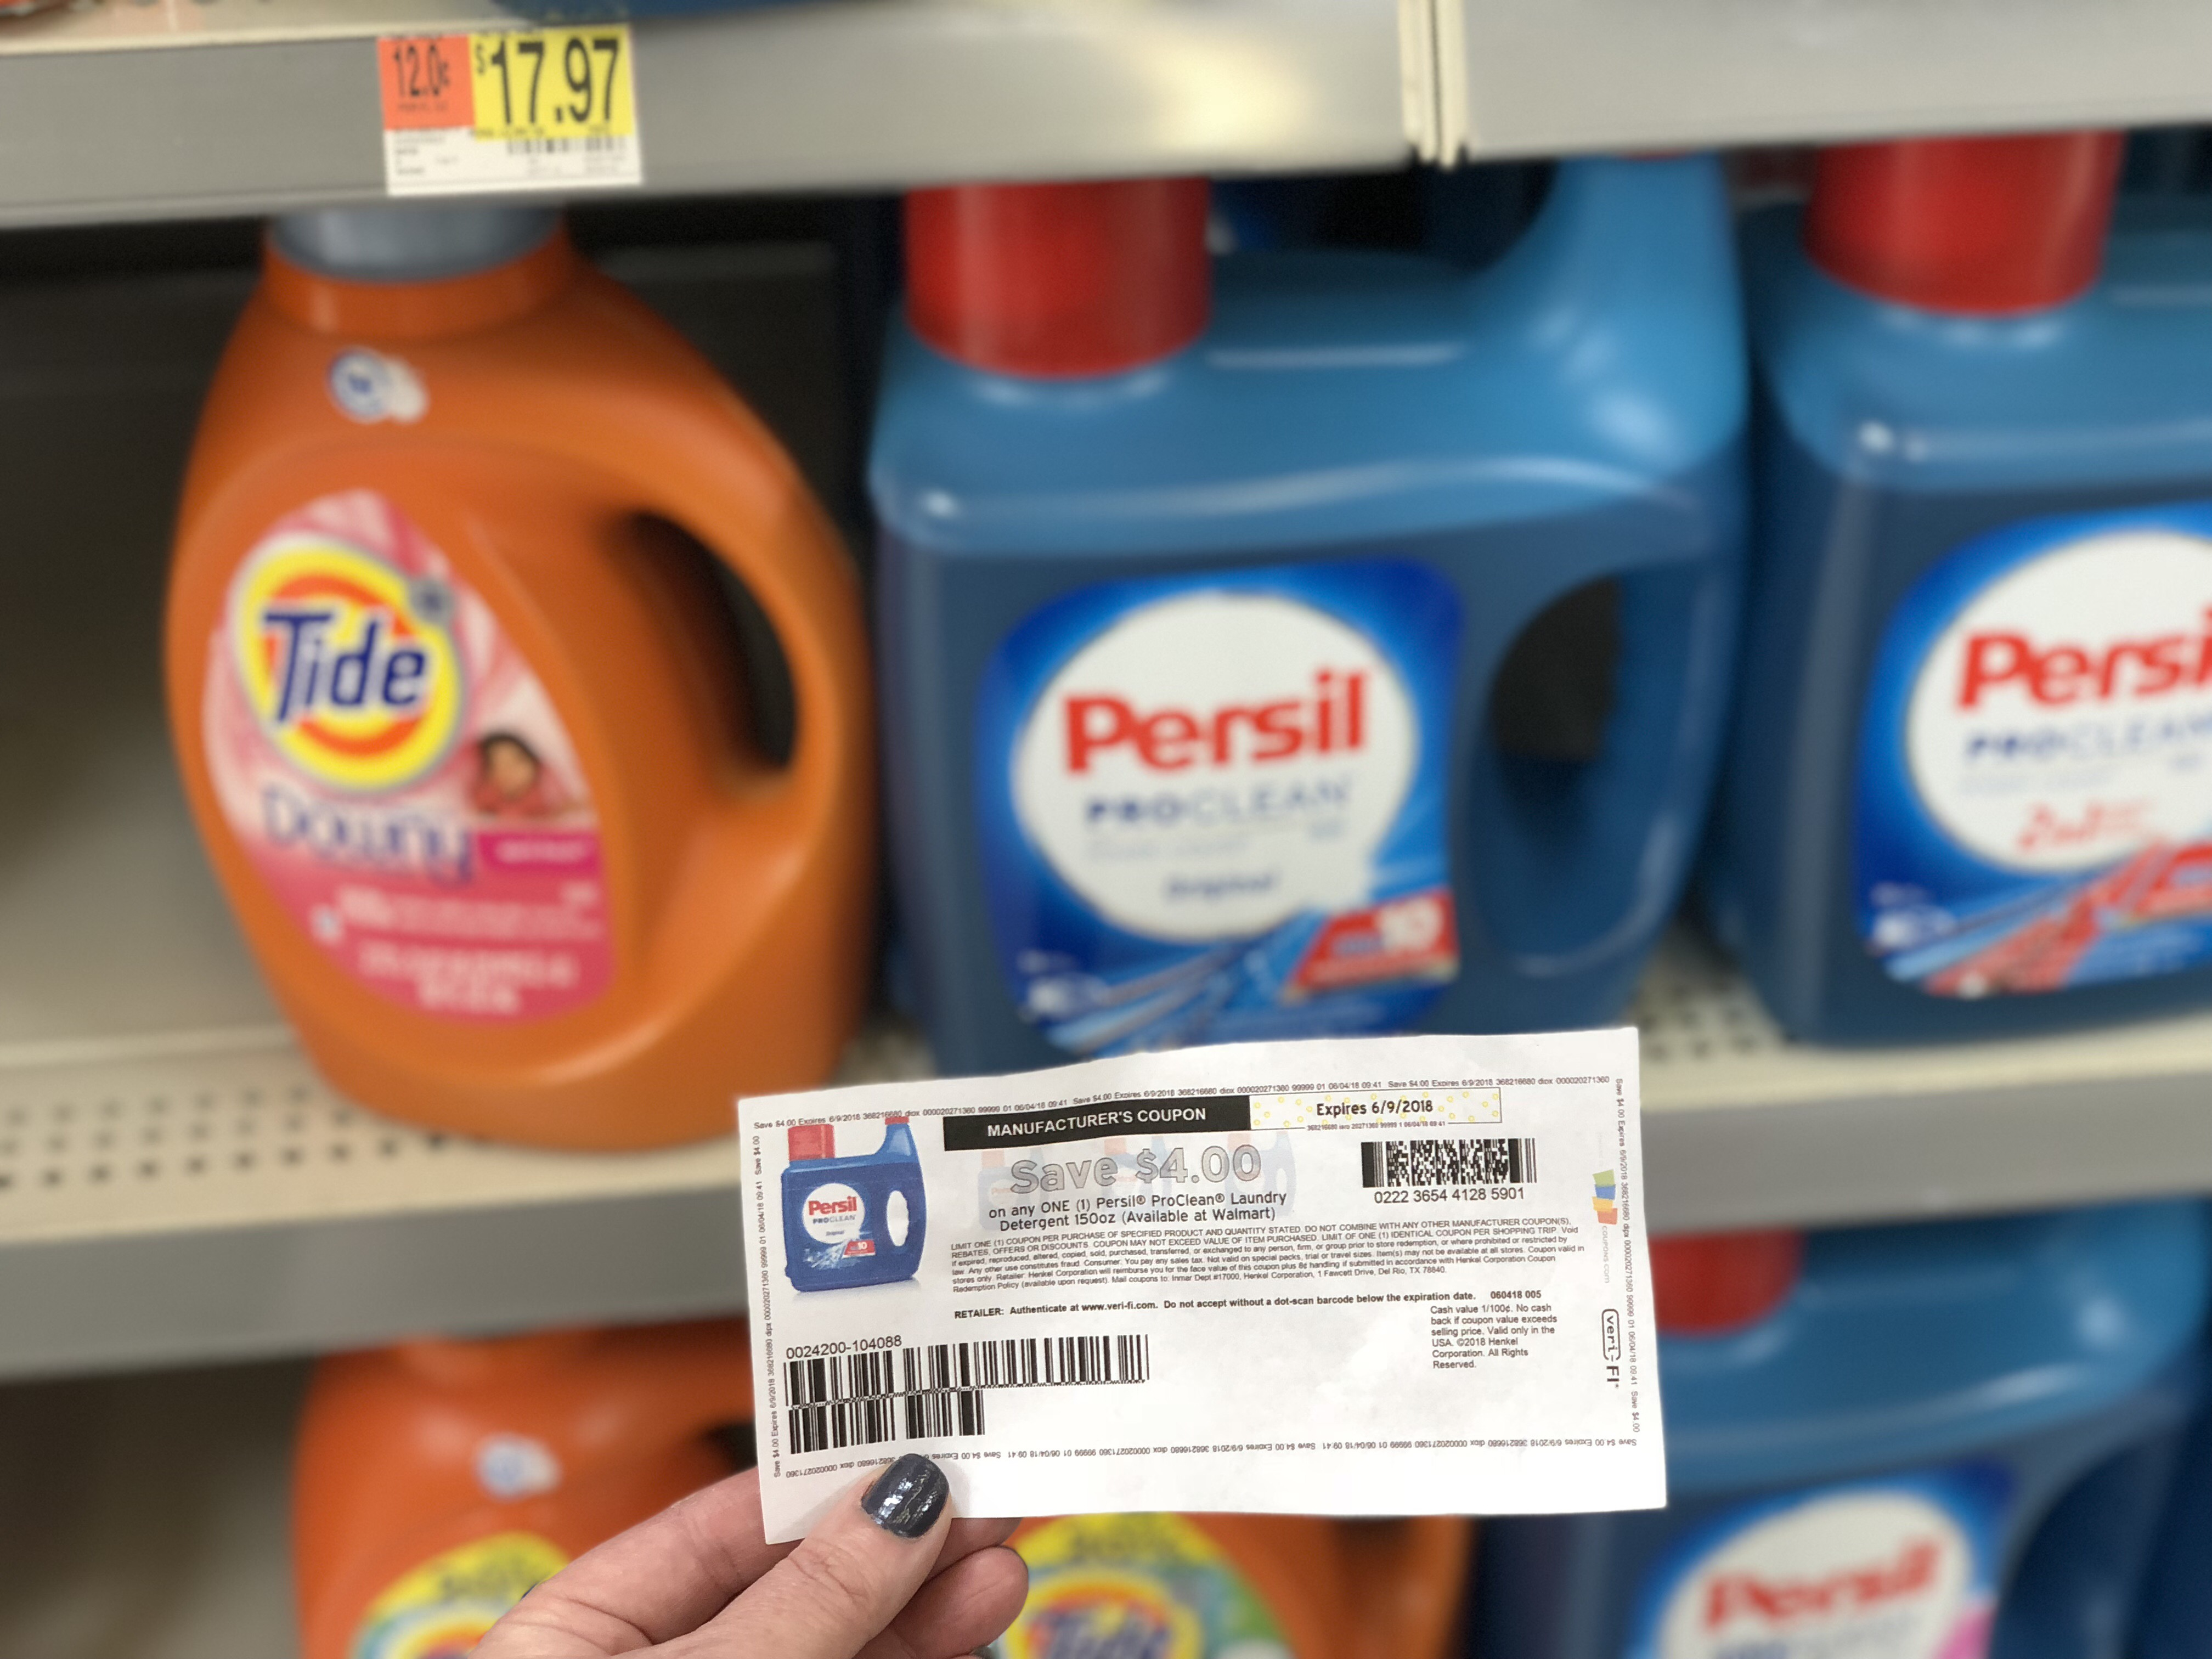 image relating to Printable Persil Laundry Detergent Coupons identified as Dont Skip This $4/1 Persil ProClean Laundry Detergent